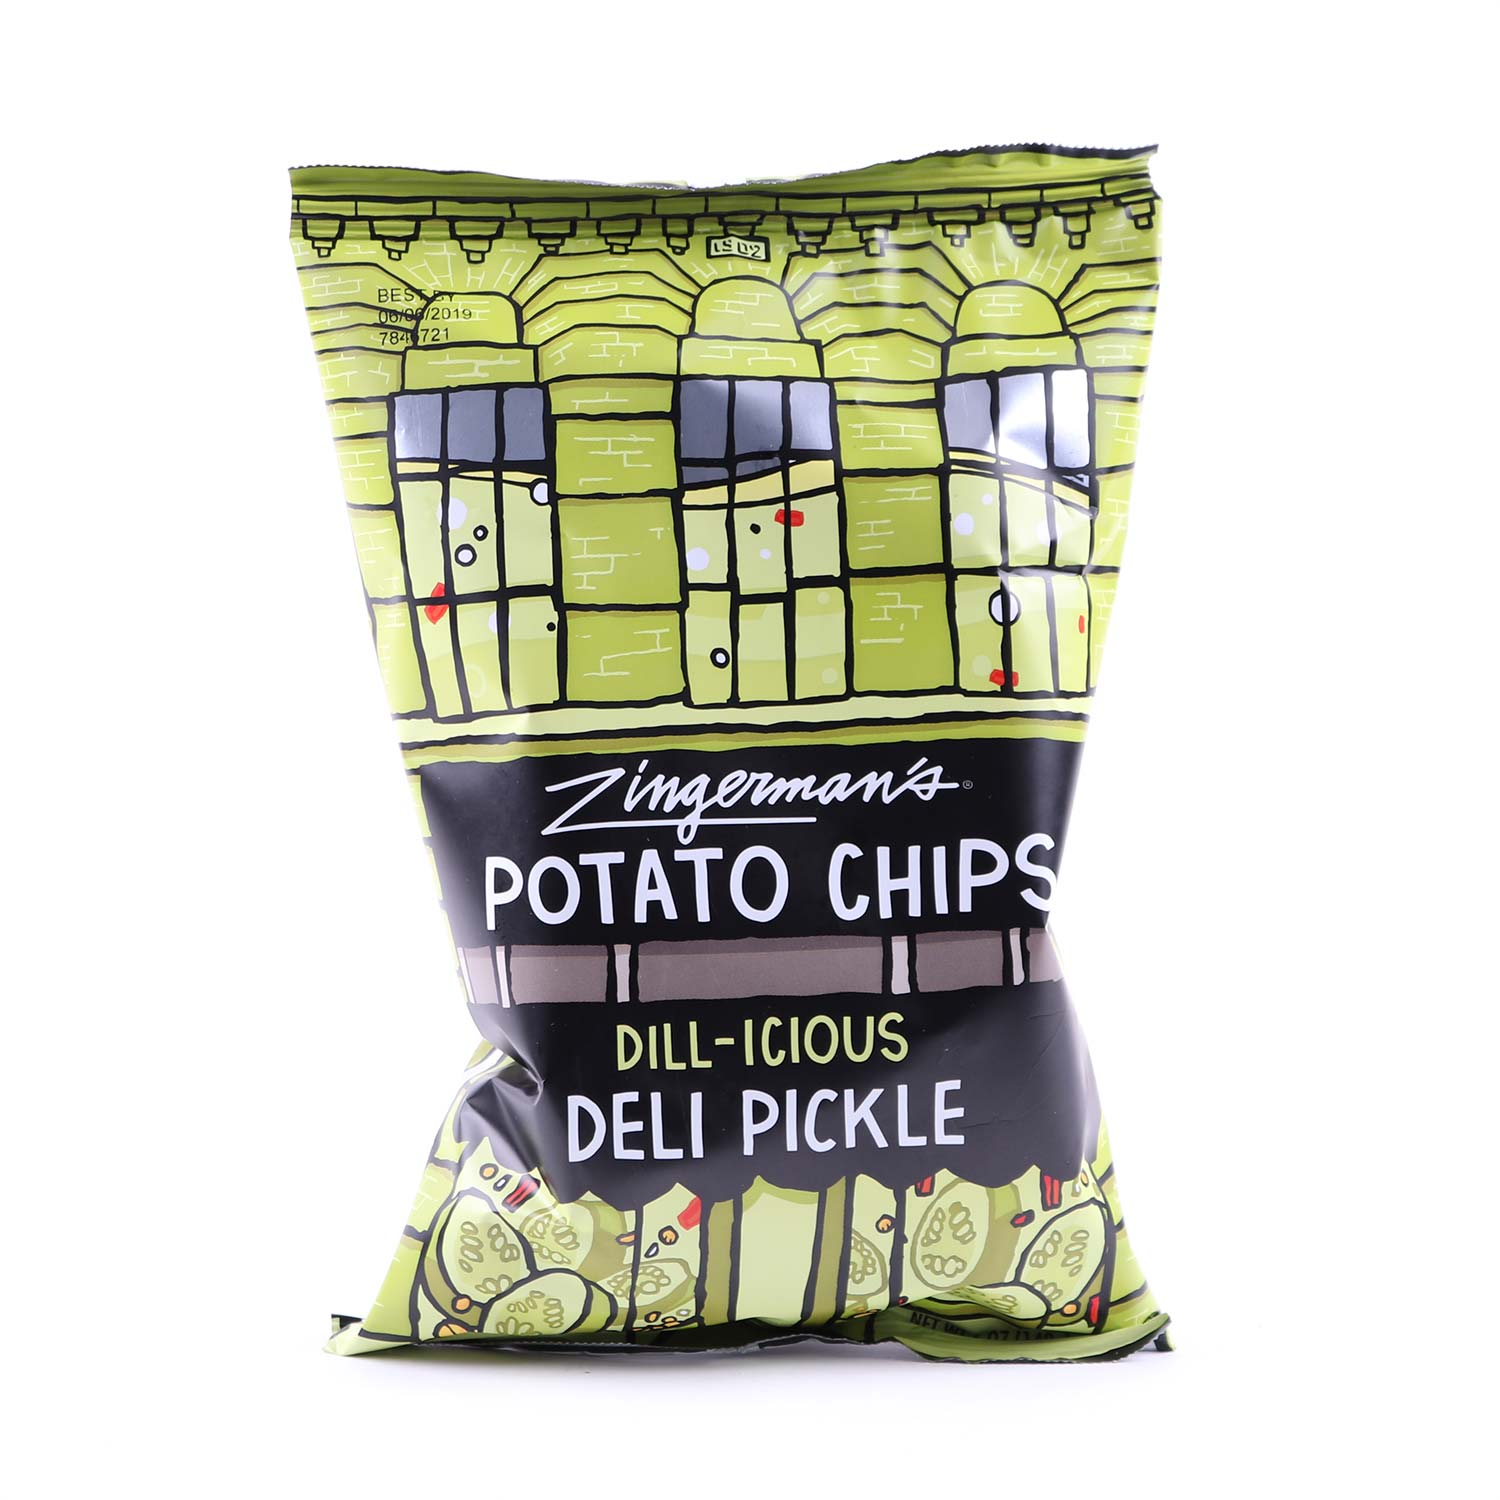 Potato Chips, Dill-icious Deli Pickle